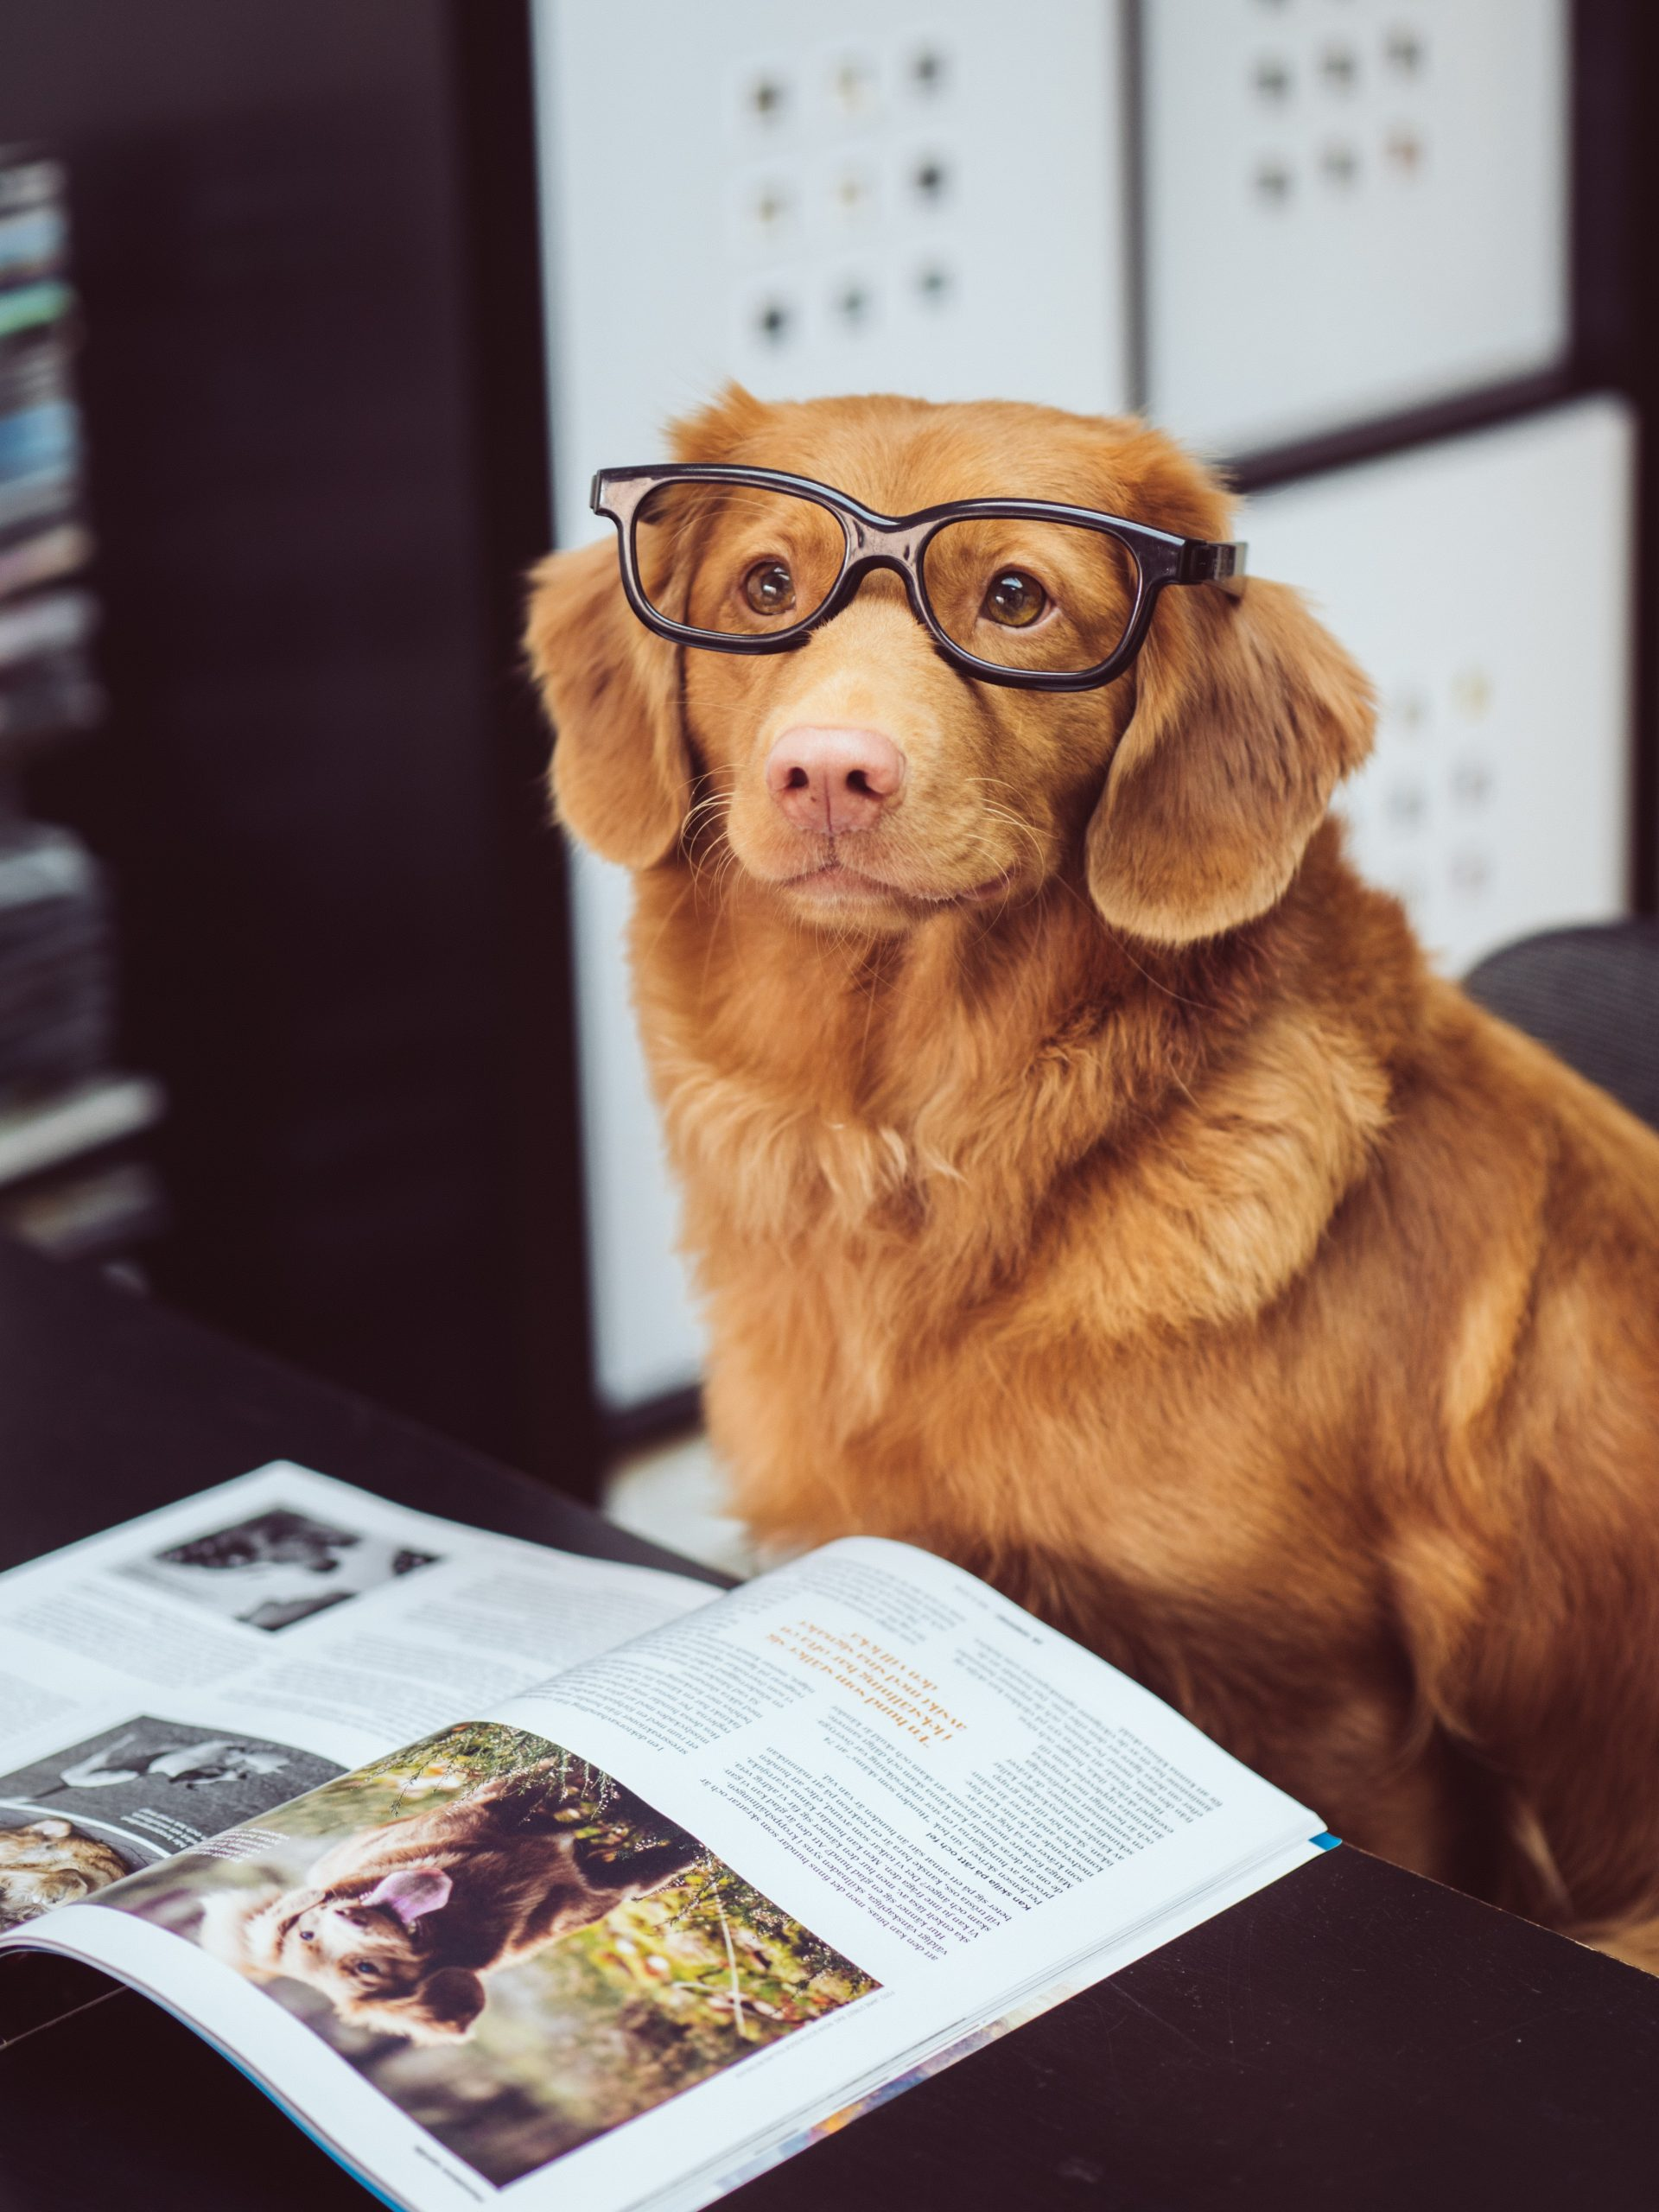 brown dog wearing glasses reading a magazine